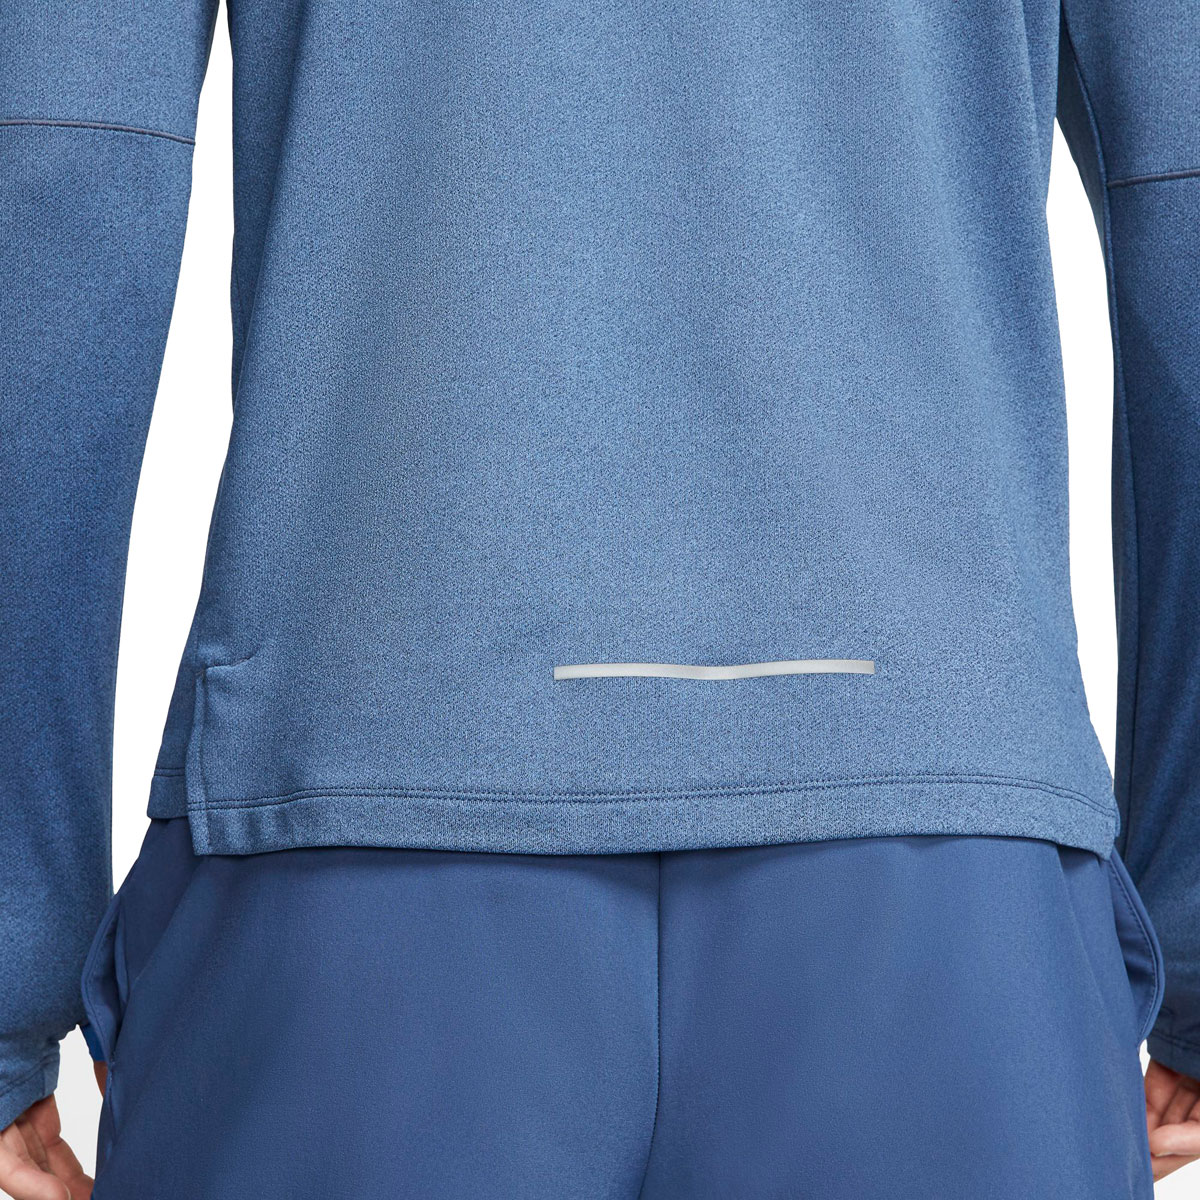 Men's Nike Element 3.0 1/2-Zip Running Top - Color: Obsidian/Htr/Reflective Silver - Size: S, Obsidian/Heather/Reflective Silver, large, image 4